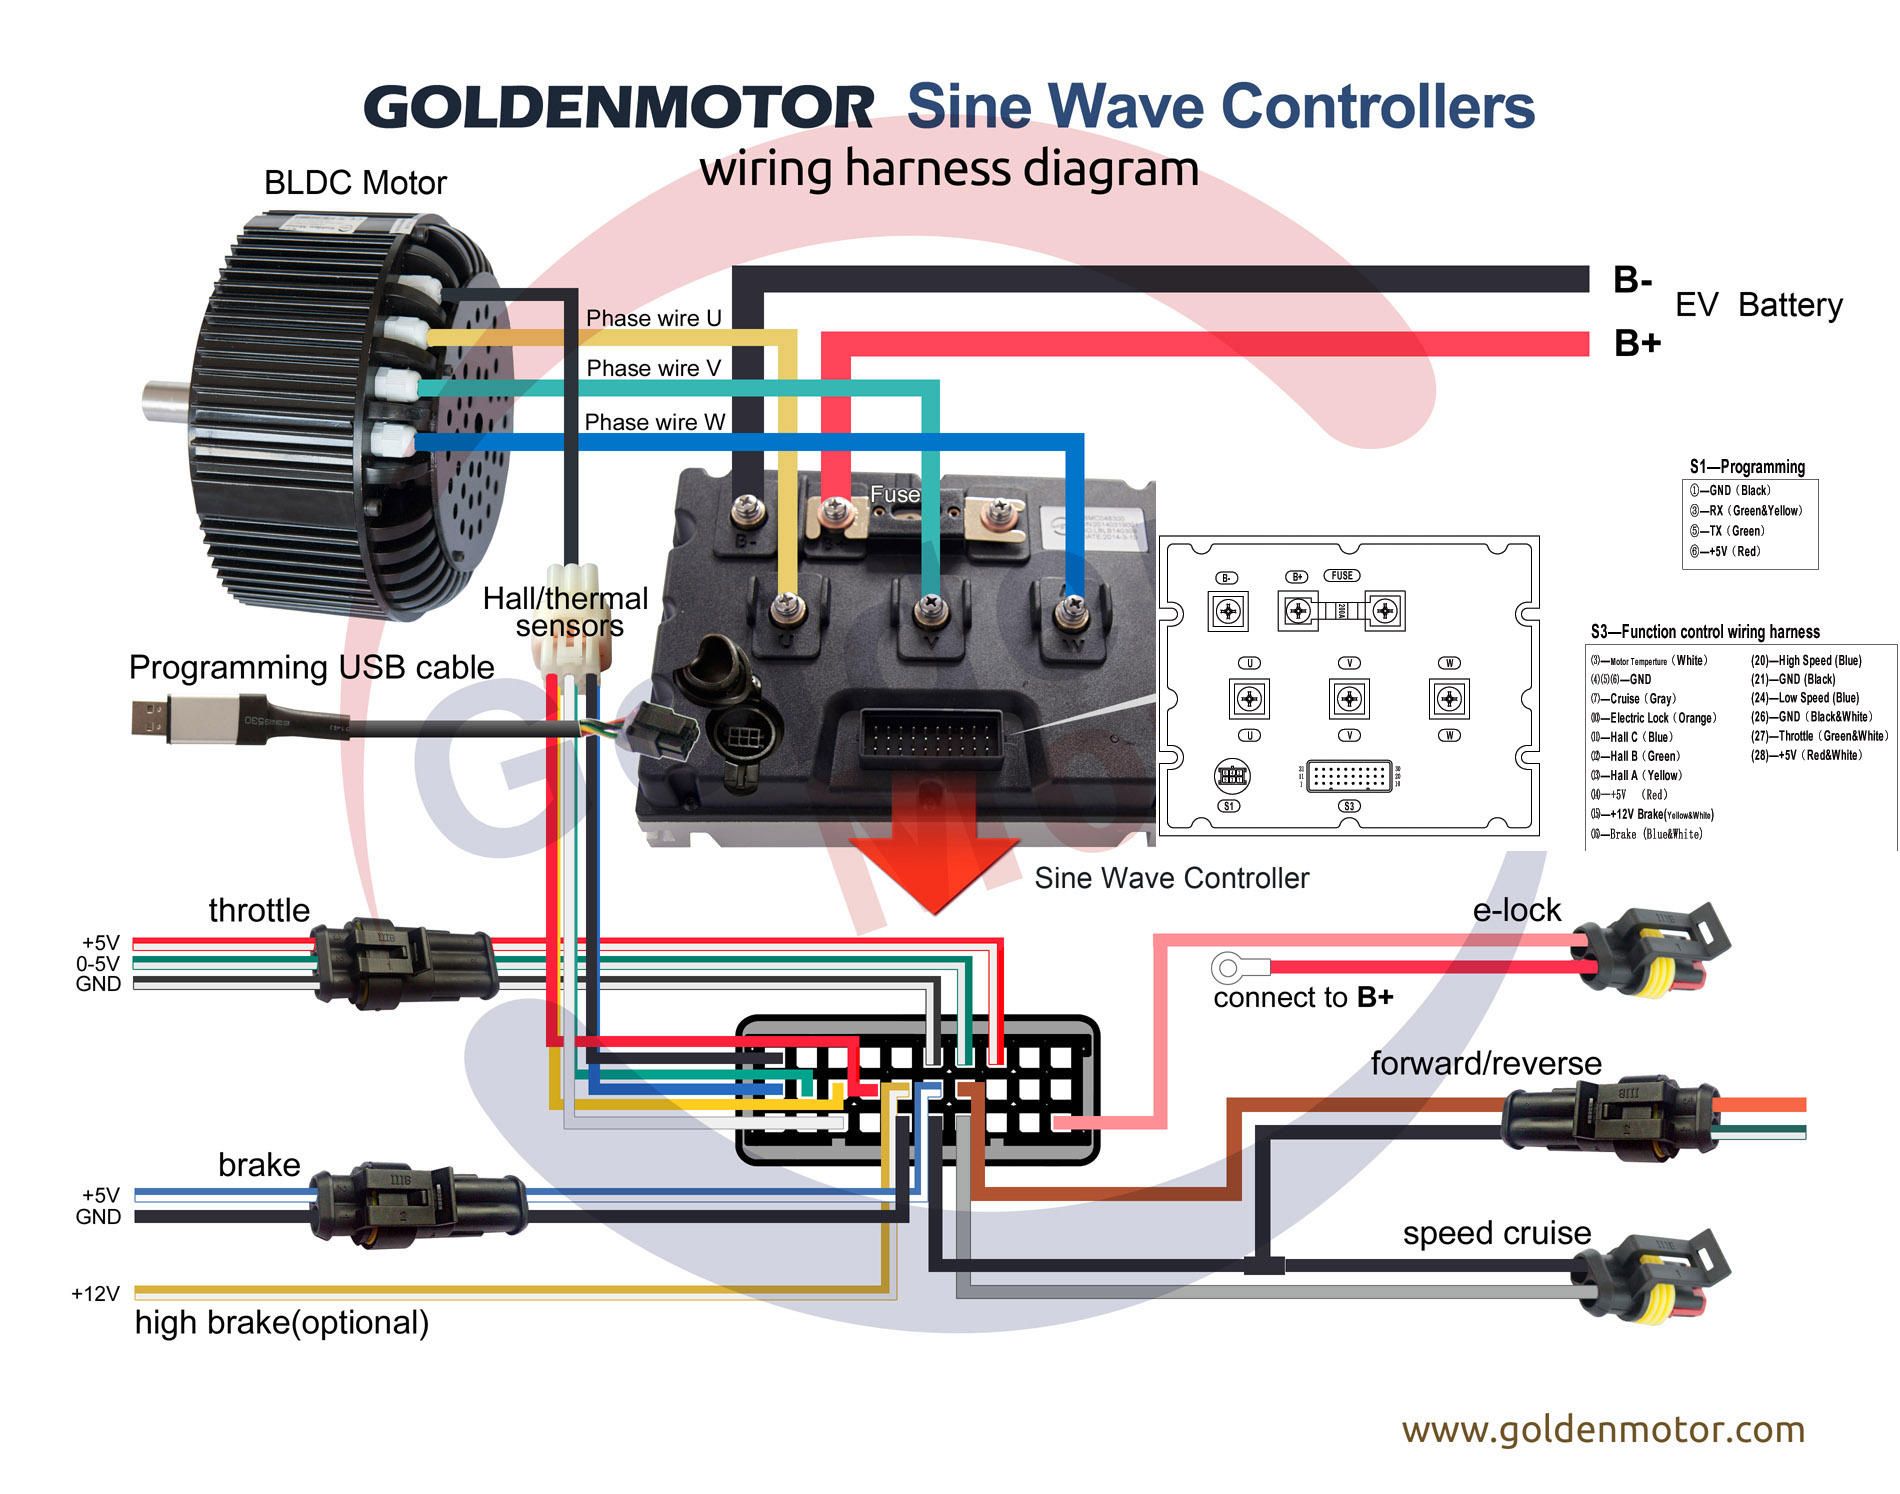 [DIAGRAM_5FD]  Electric Motorcycle, Electric Motorbike, Motorcycle Conversion Kit, Electric  motorcross, DIY Electric Motorcycle, GMX motorcycle | Zero Electric Motorcycle Wiring Diagram |  | Golden Motors